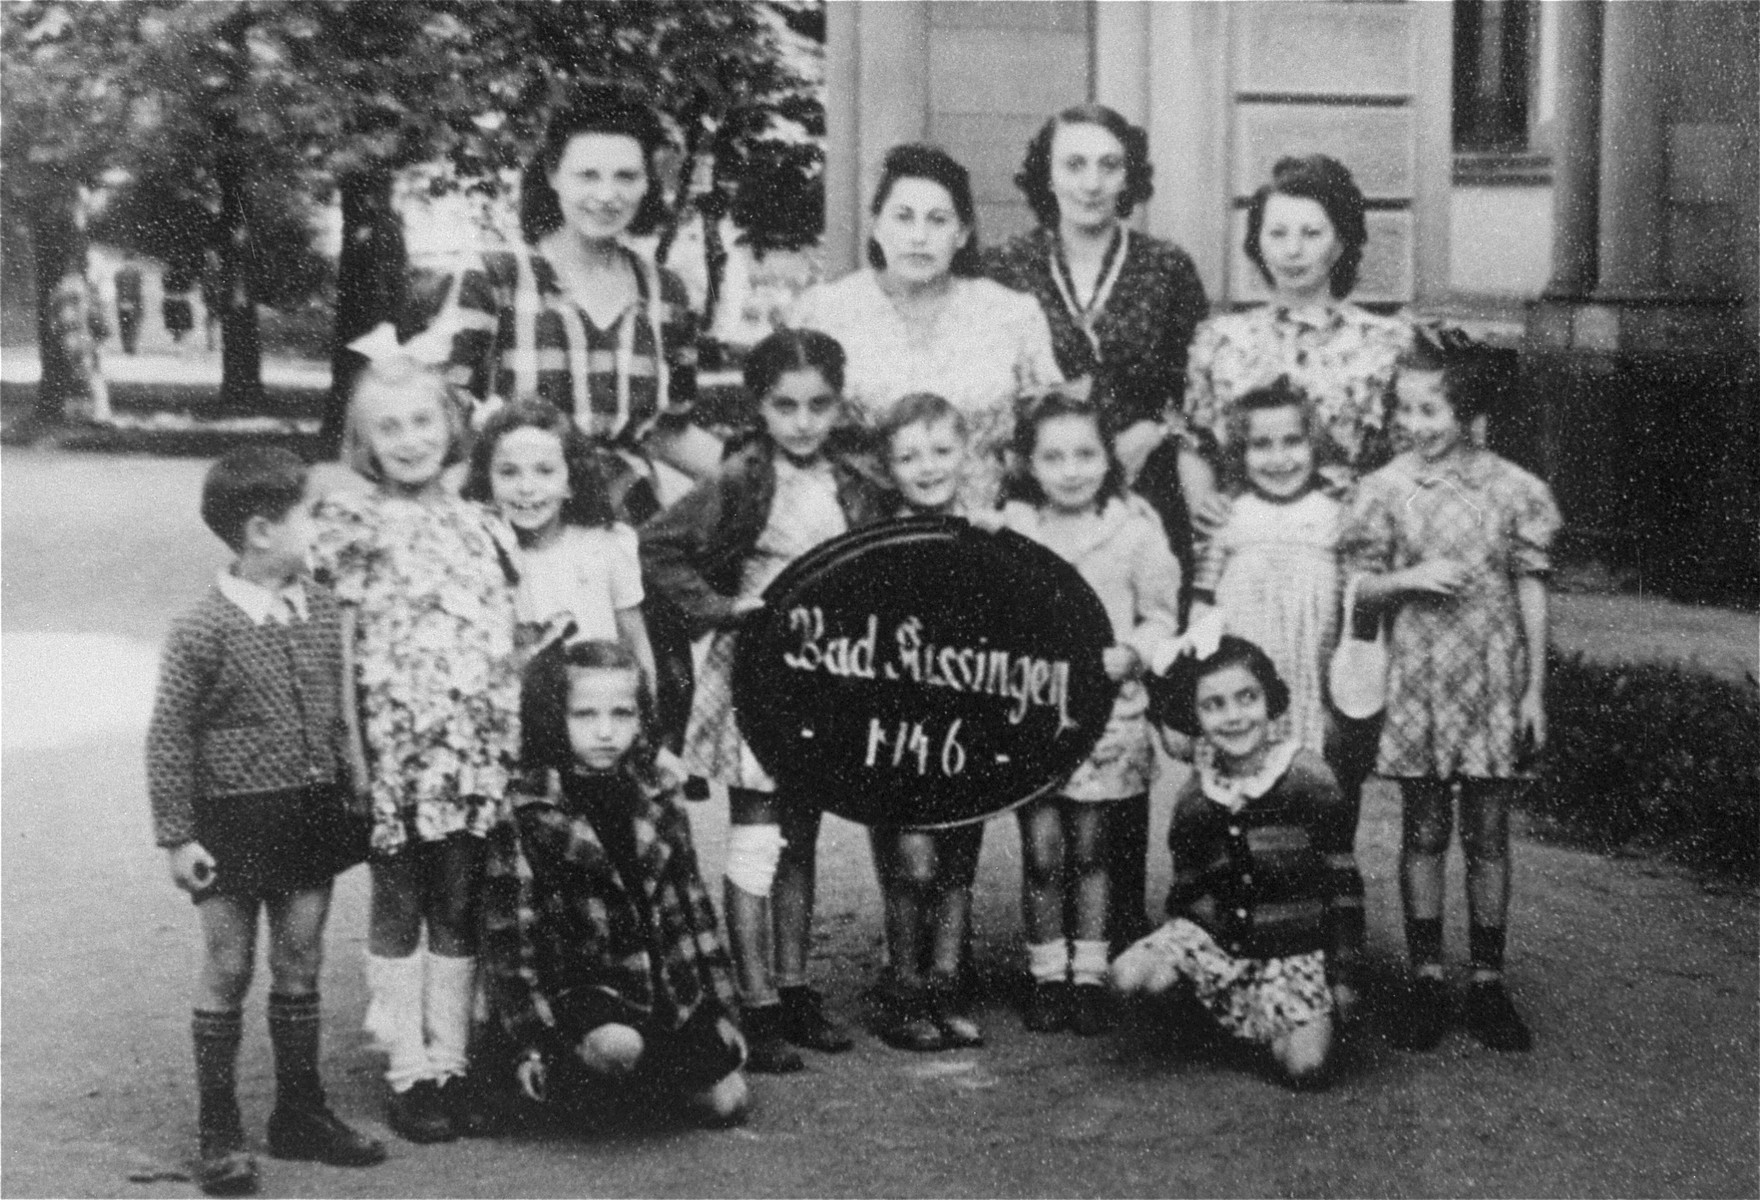 Group portrait of Jewish DP women and children at the Bad Kissingen displaced persons camp.  The children survived the war in hiding.  Among those pictured is Esther Zelowicz (now Edith Cove) standing in the back row, first on the left.